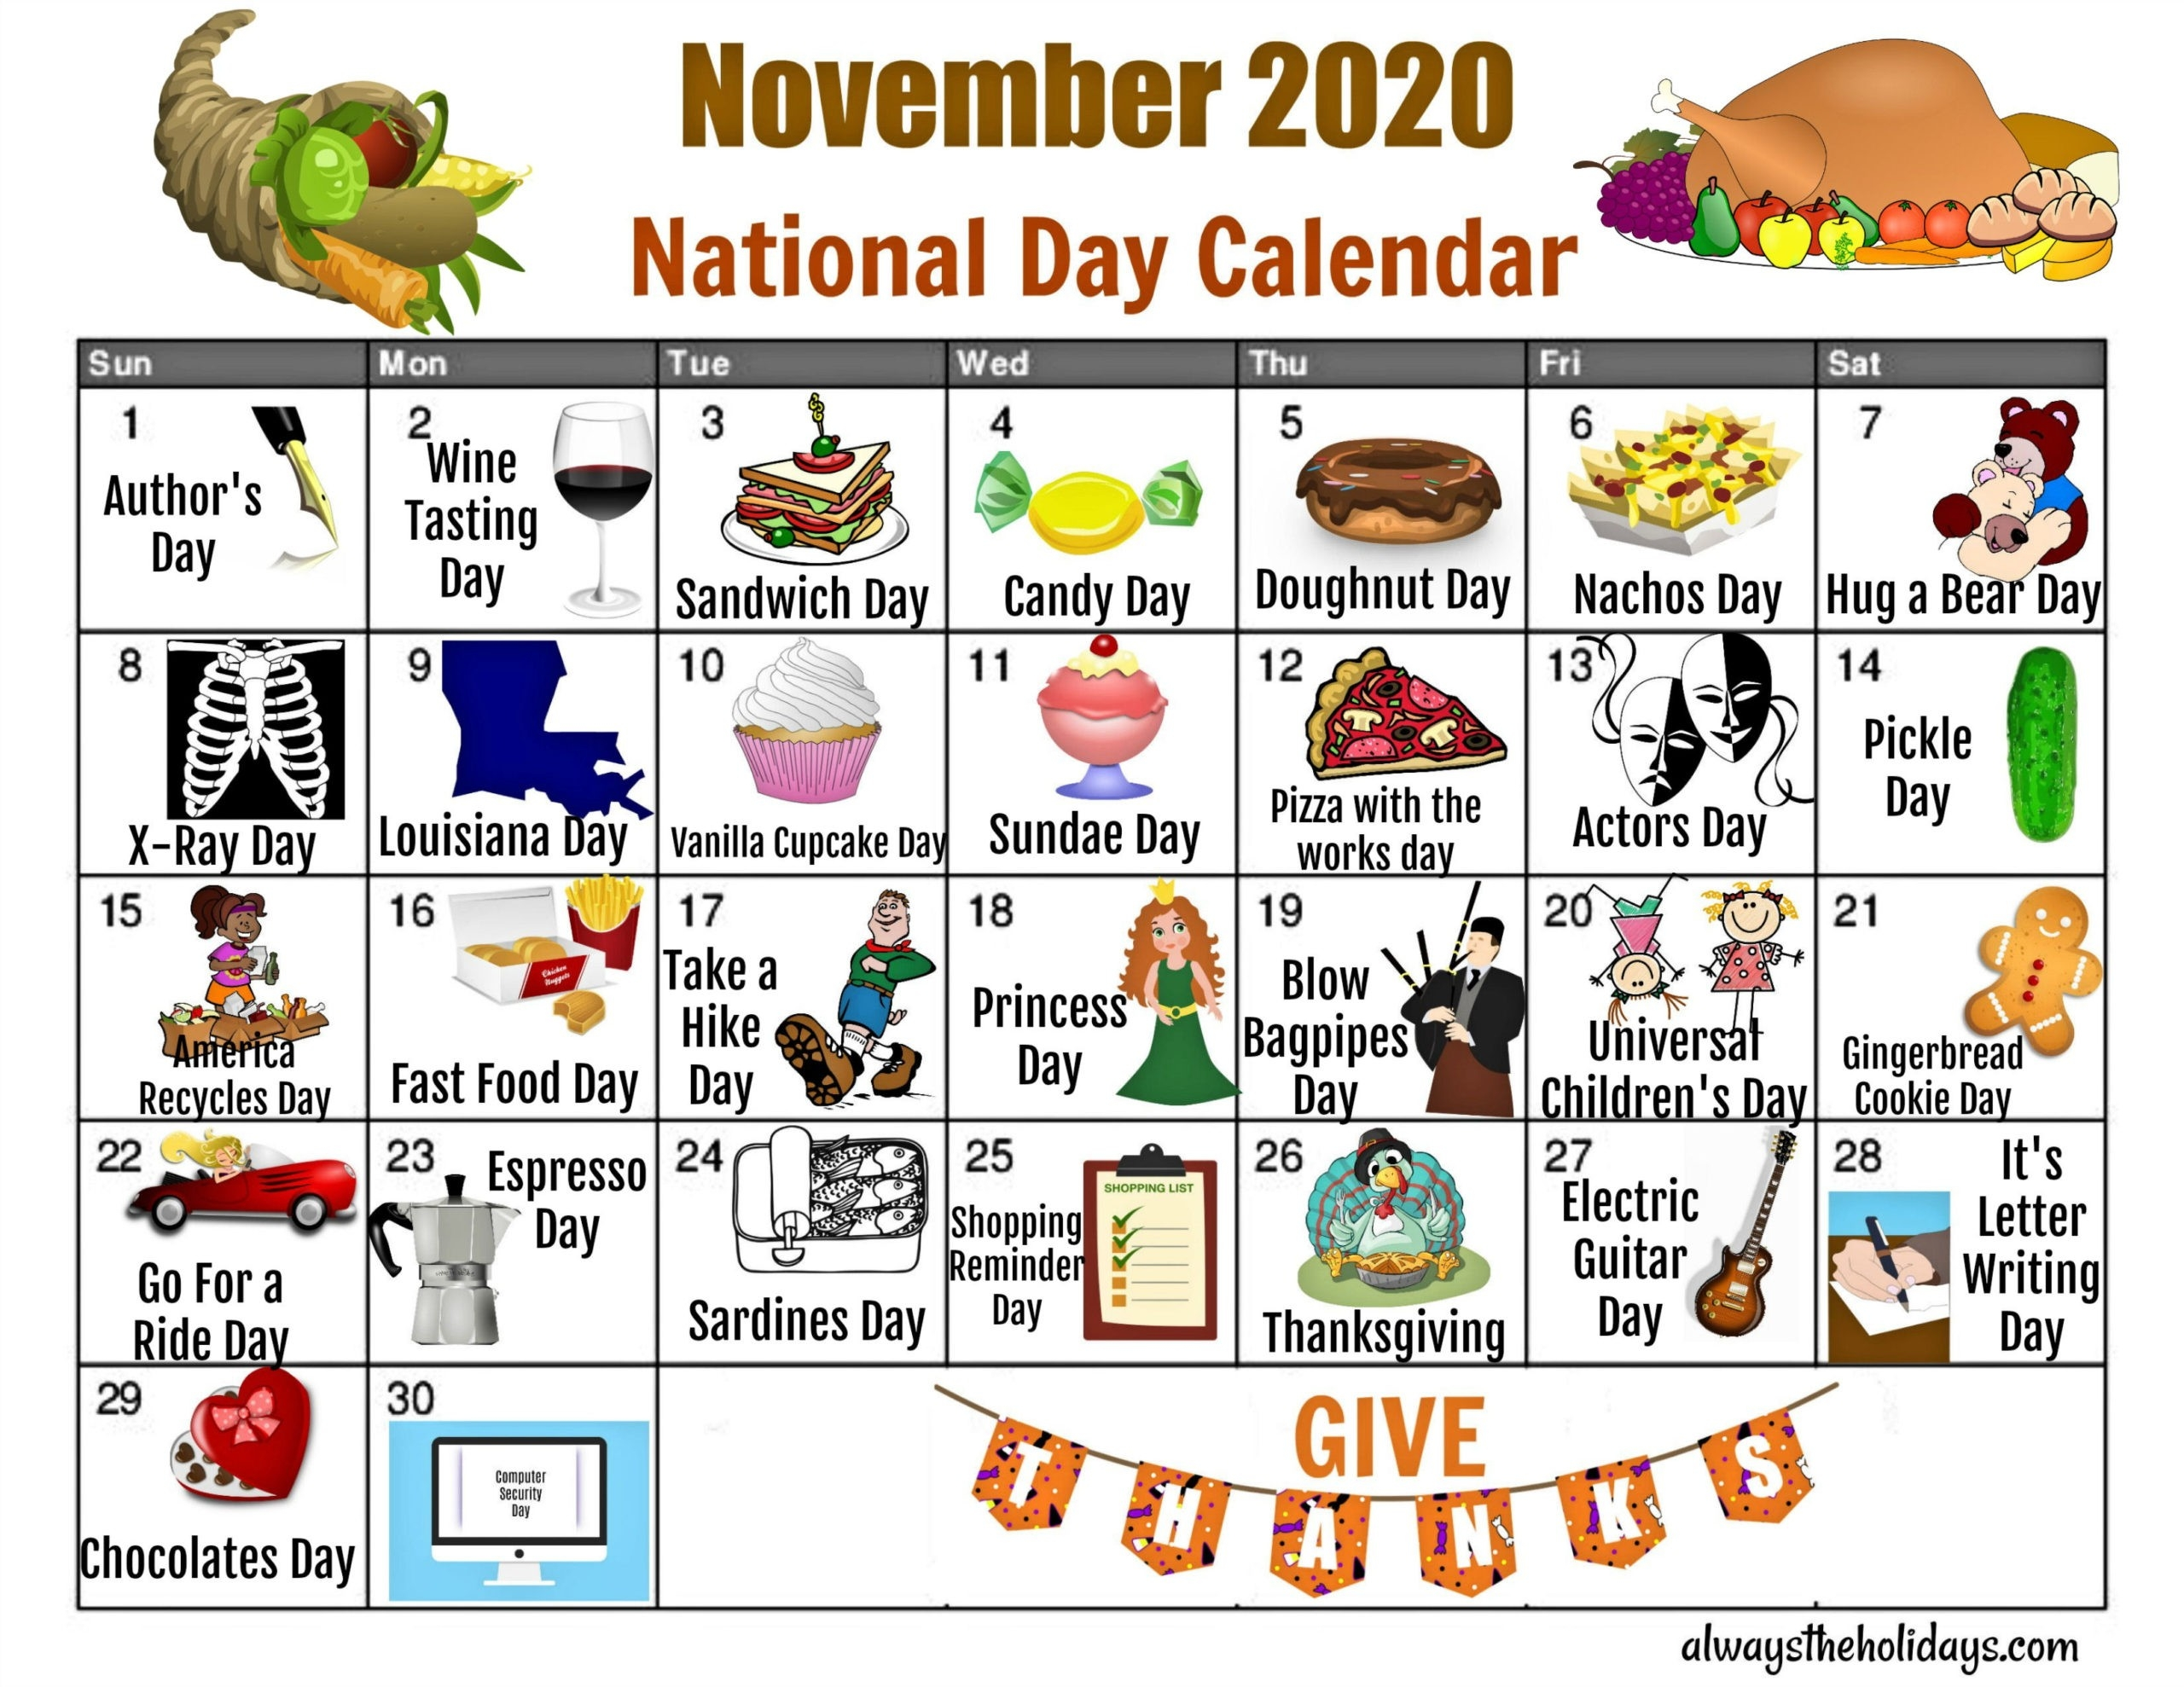 November National Day Calendar - Free Printable Calendars-Fun National Day Calendar Of 2021 Printable